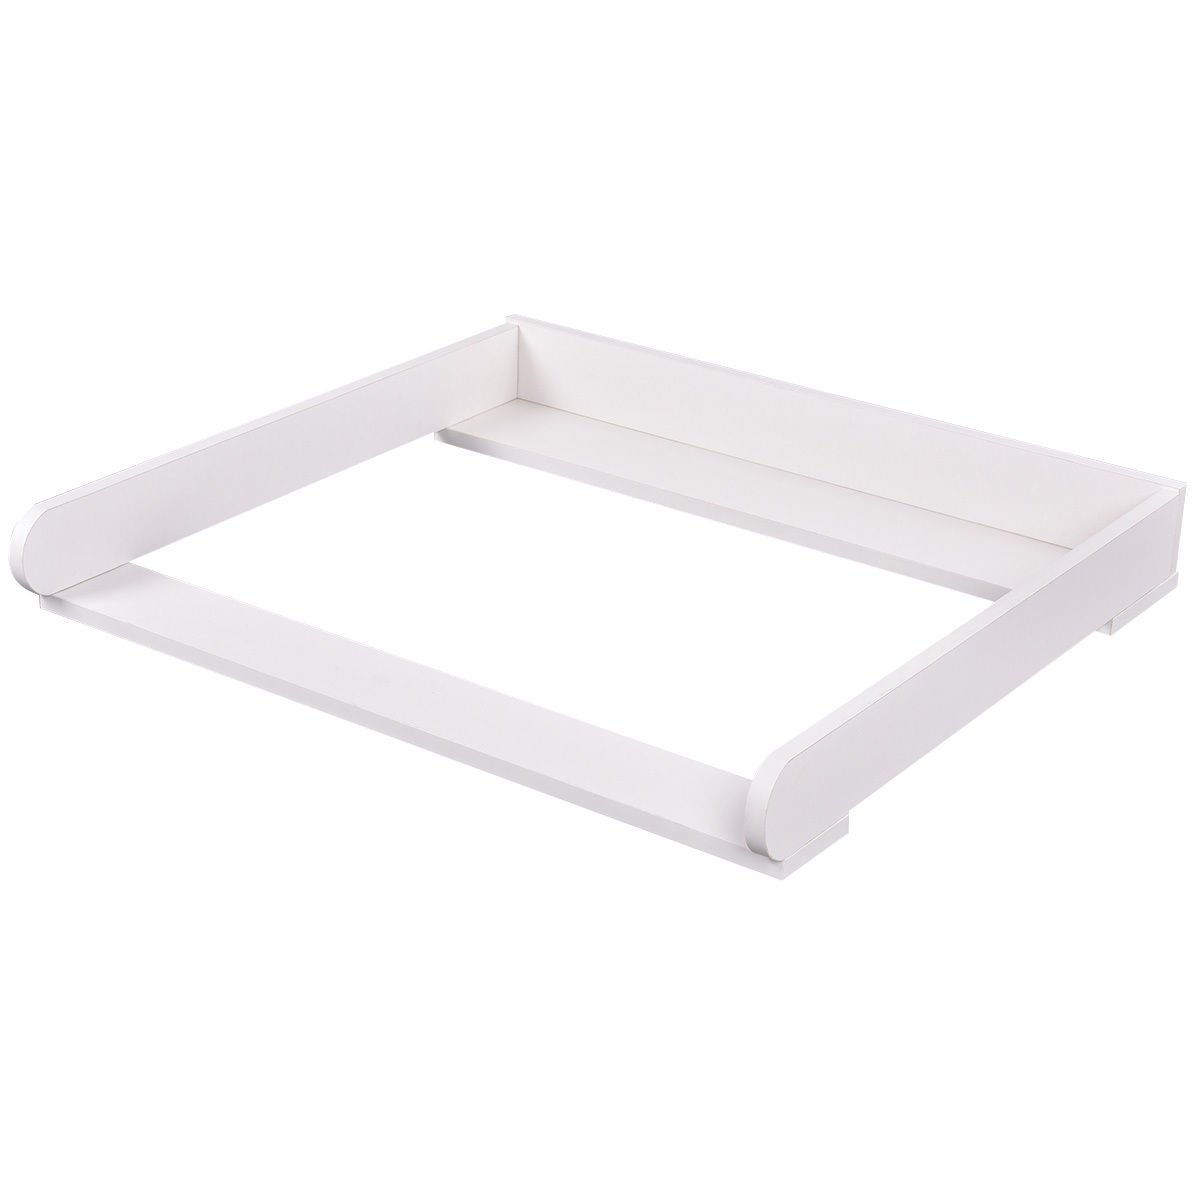 Costzon 31'' Changing Table Top Dresser Infant Baby Nursery Diaper Station Kit (white)